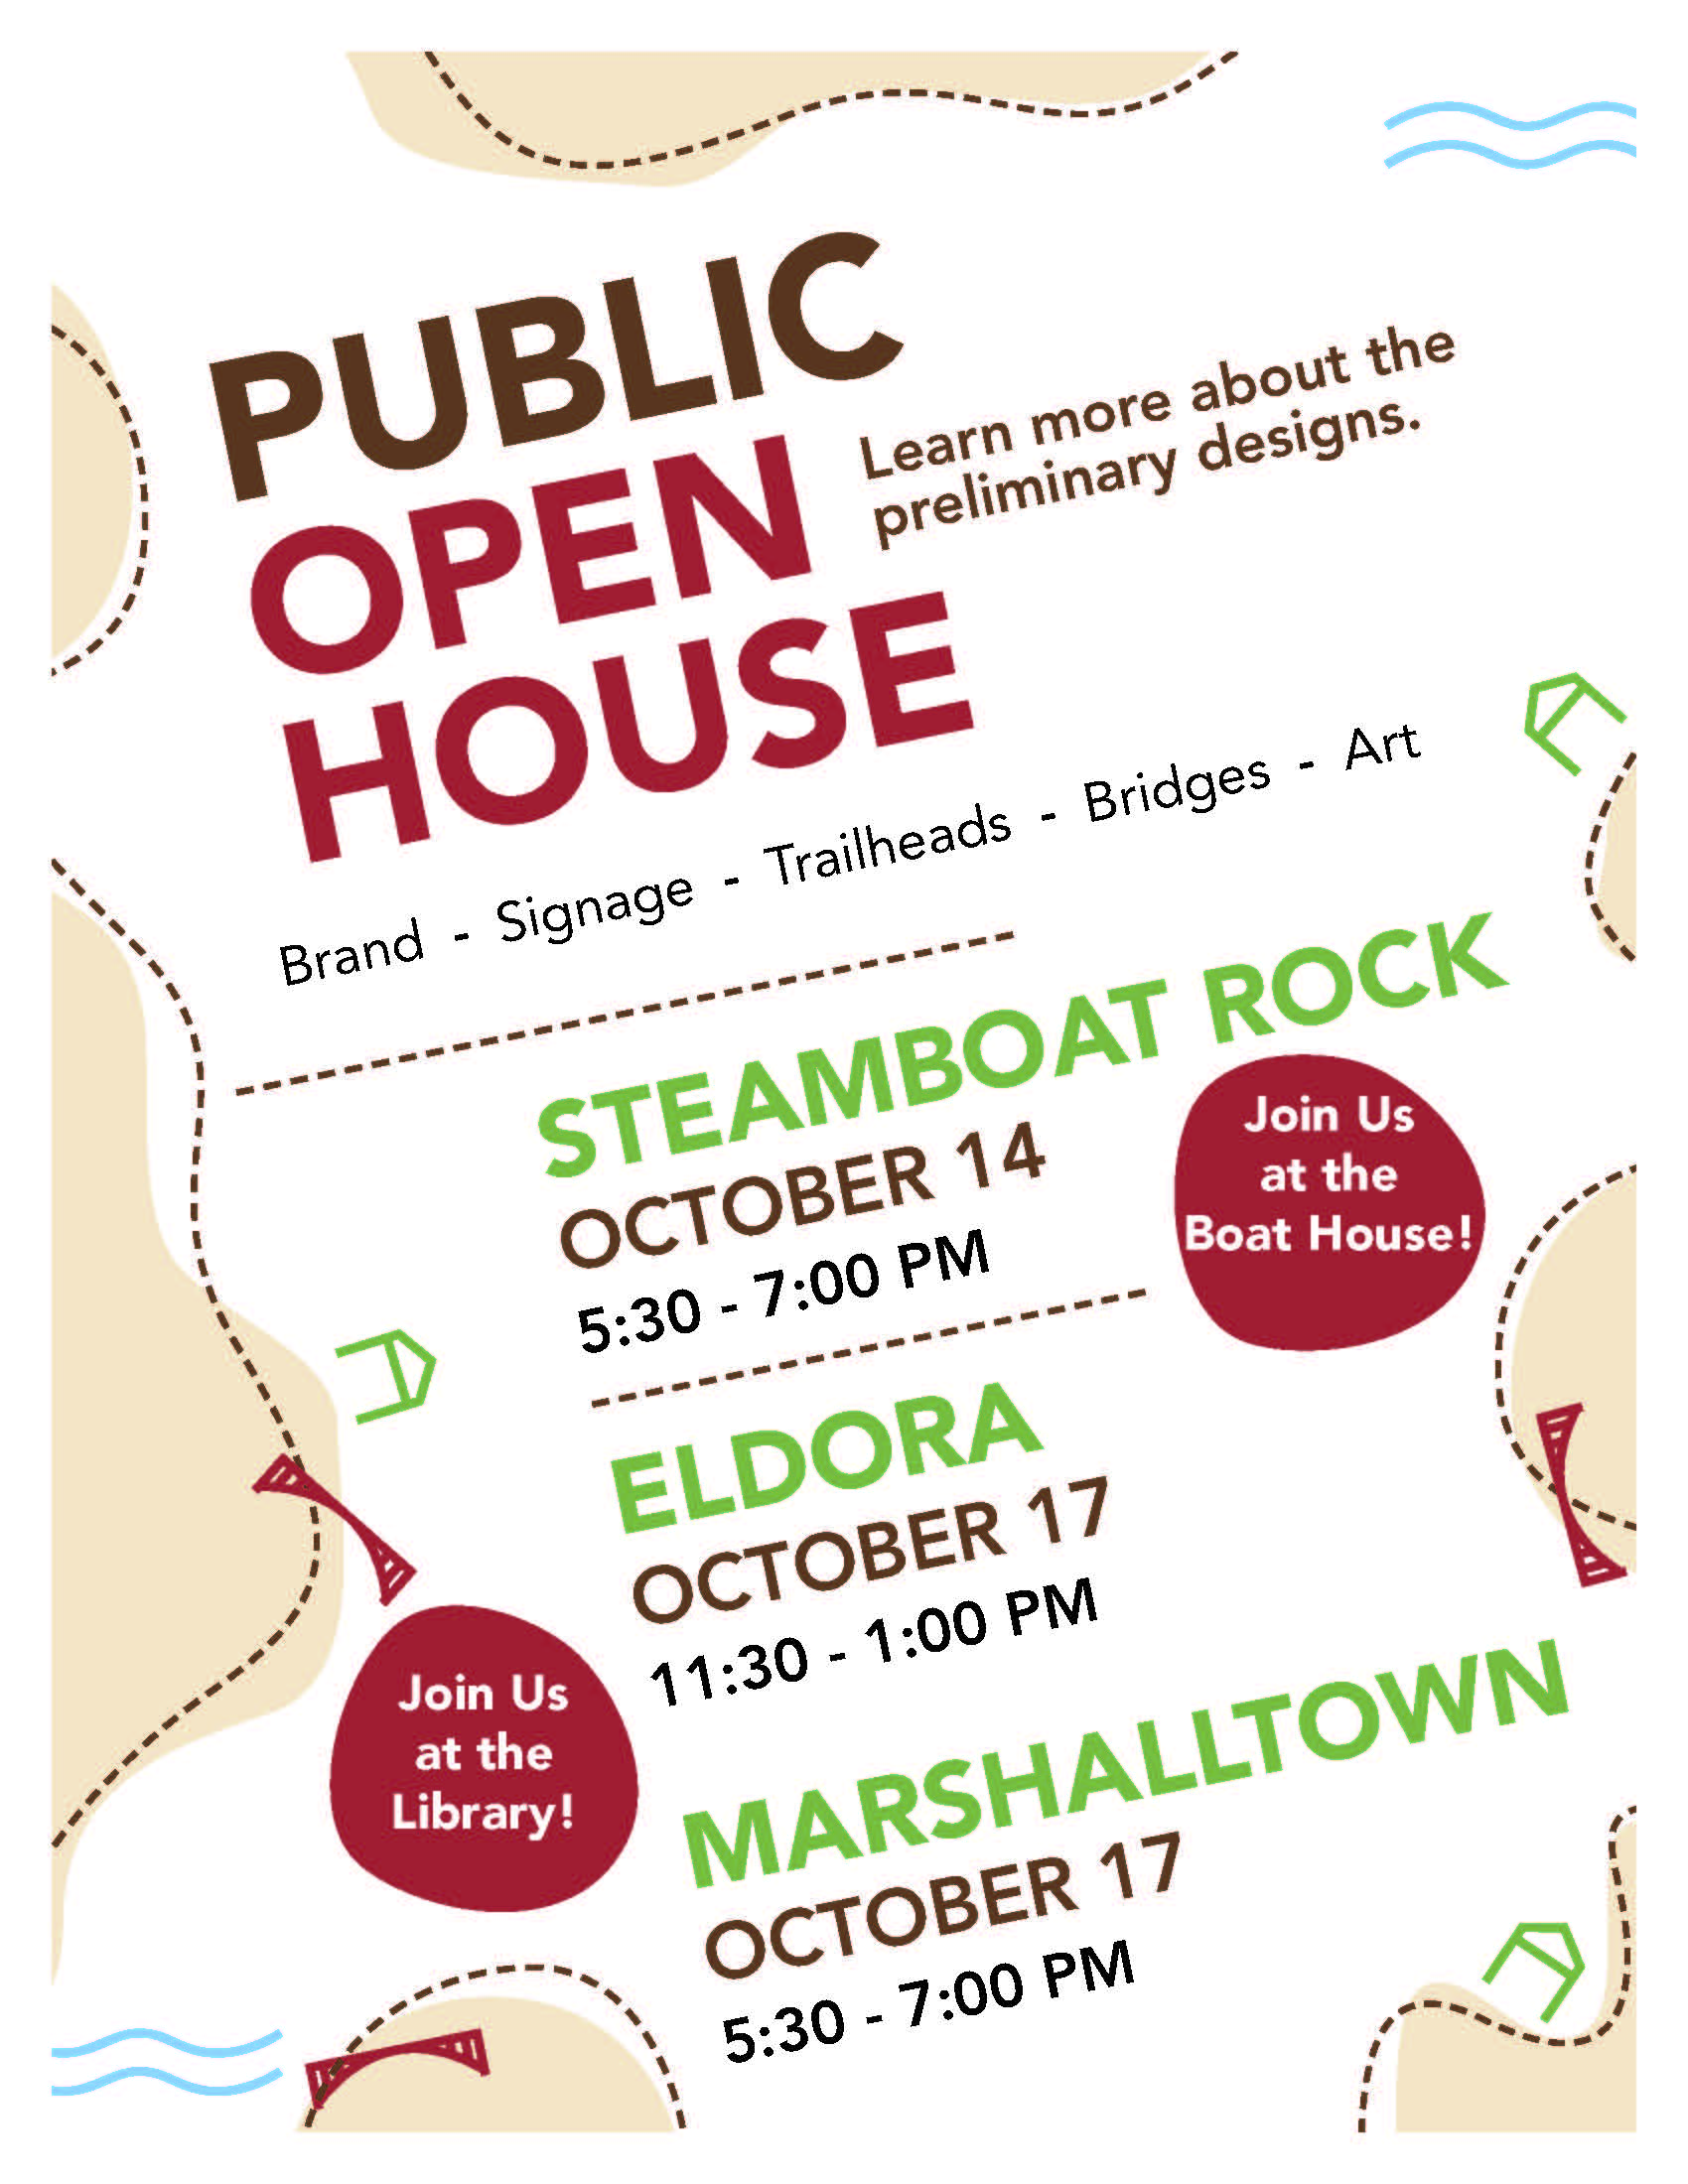 Public Open Houses- Iowa River Tral v. 2